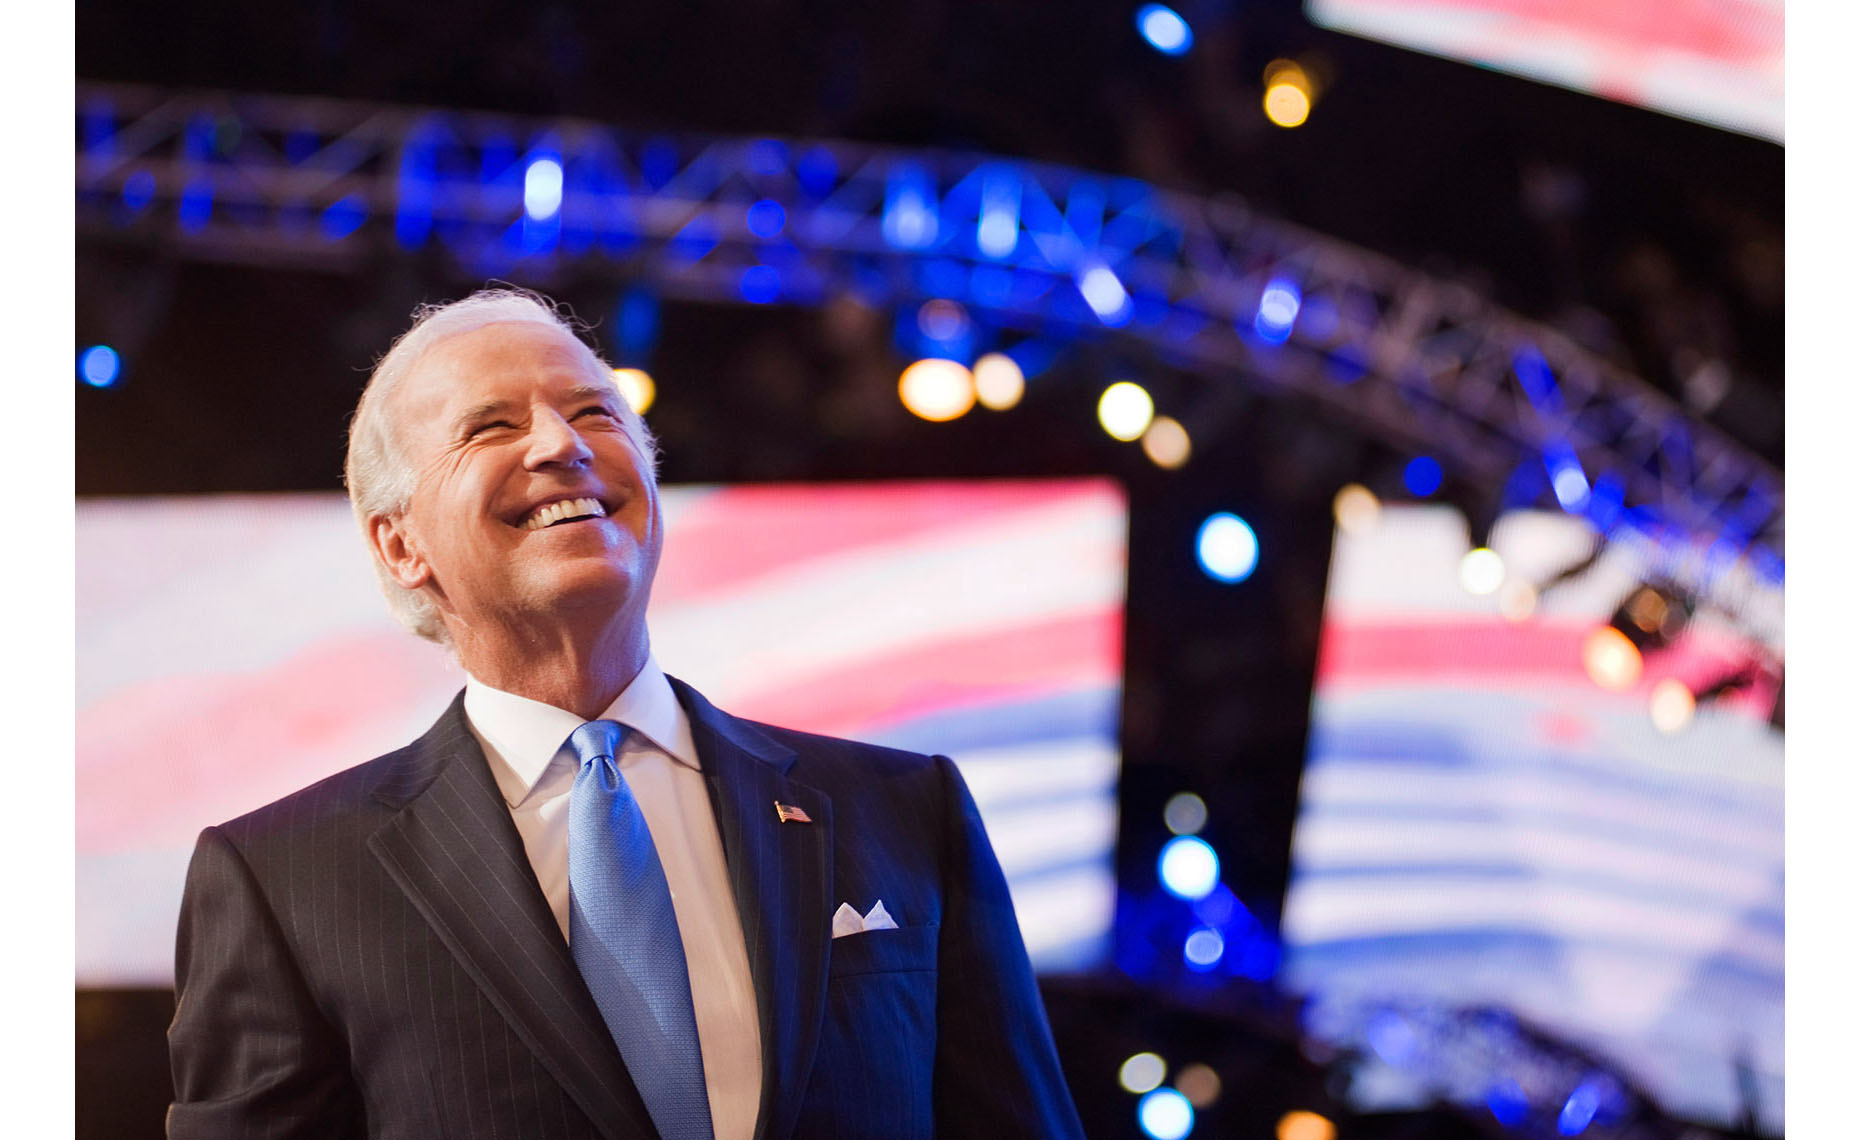 Joe Biden, 2008 Democratic National Convention | Washington DC Photographer Aaron Clamage